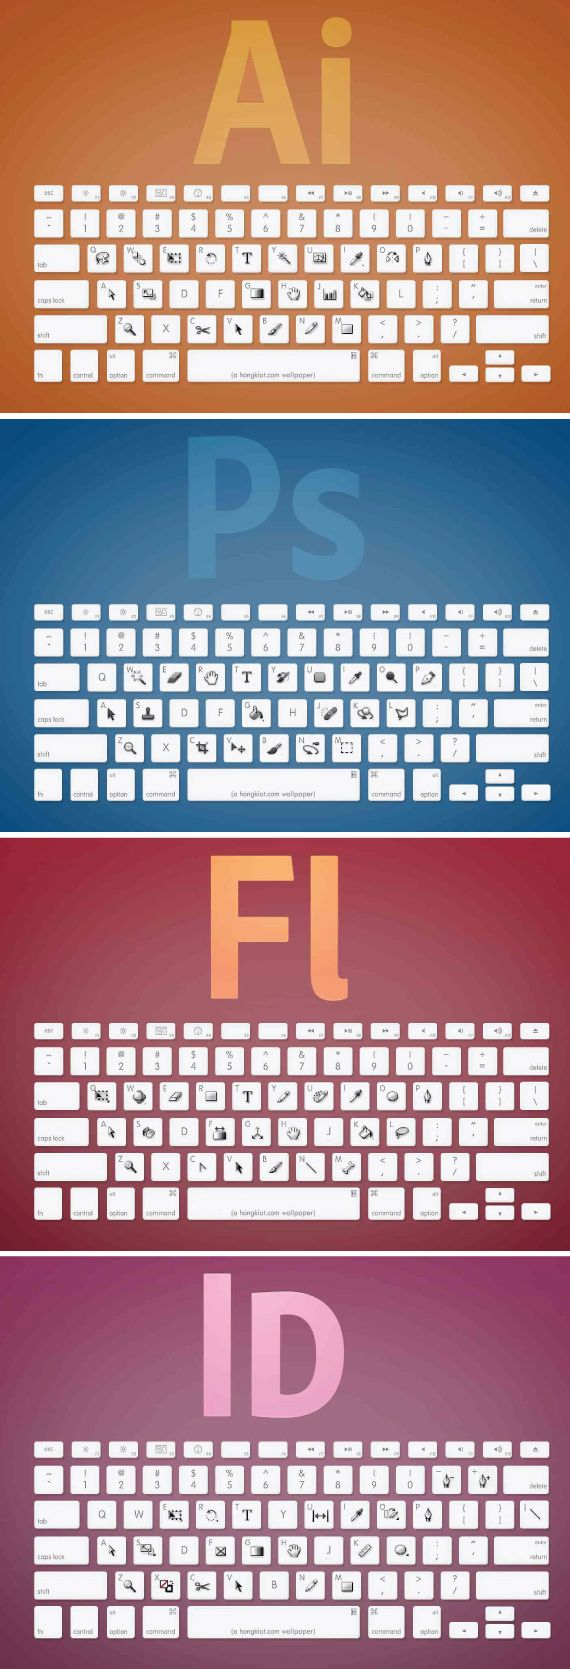 adobe shortcuts for designers